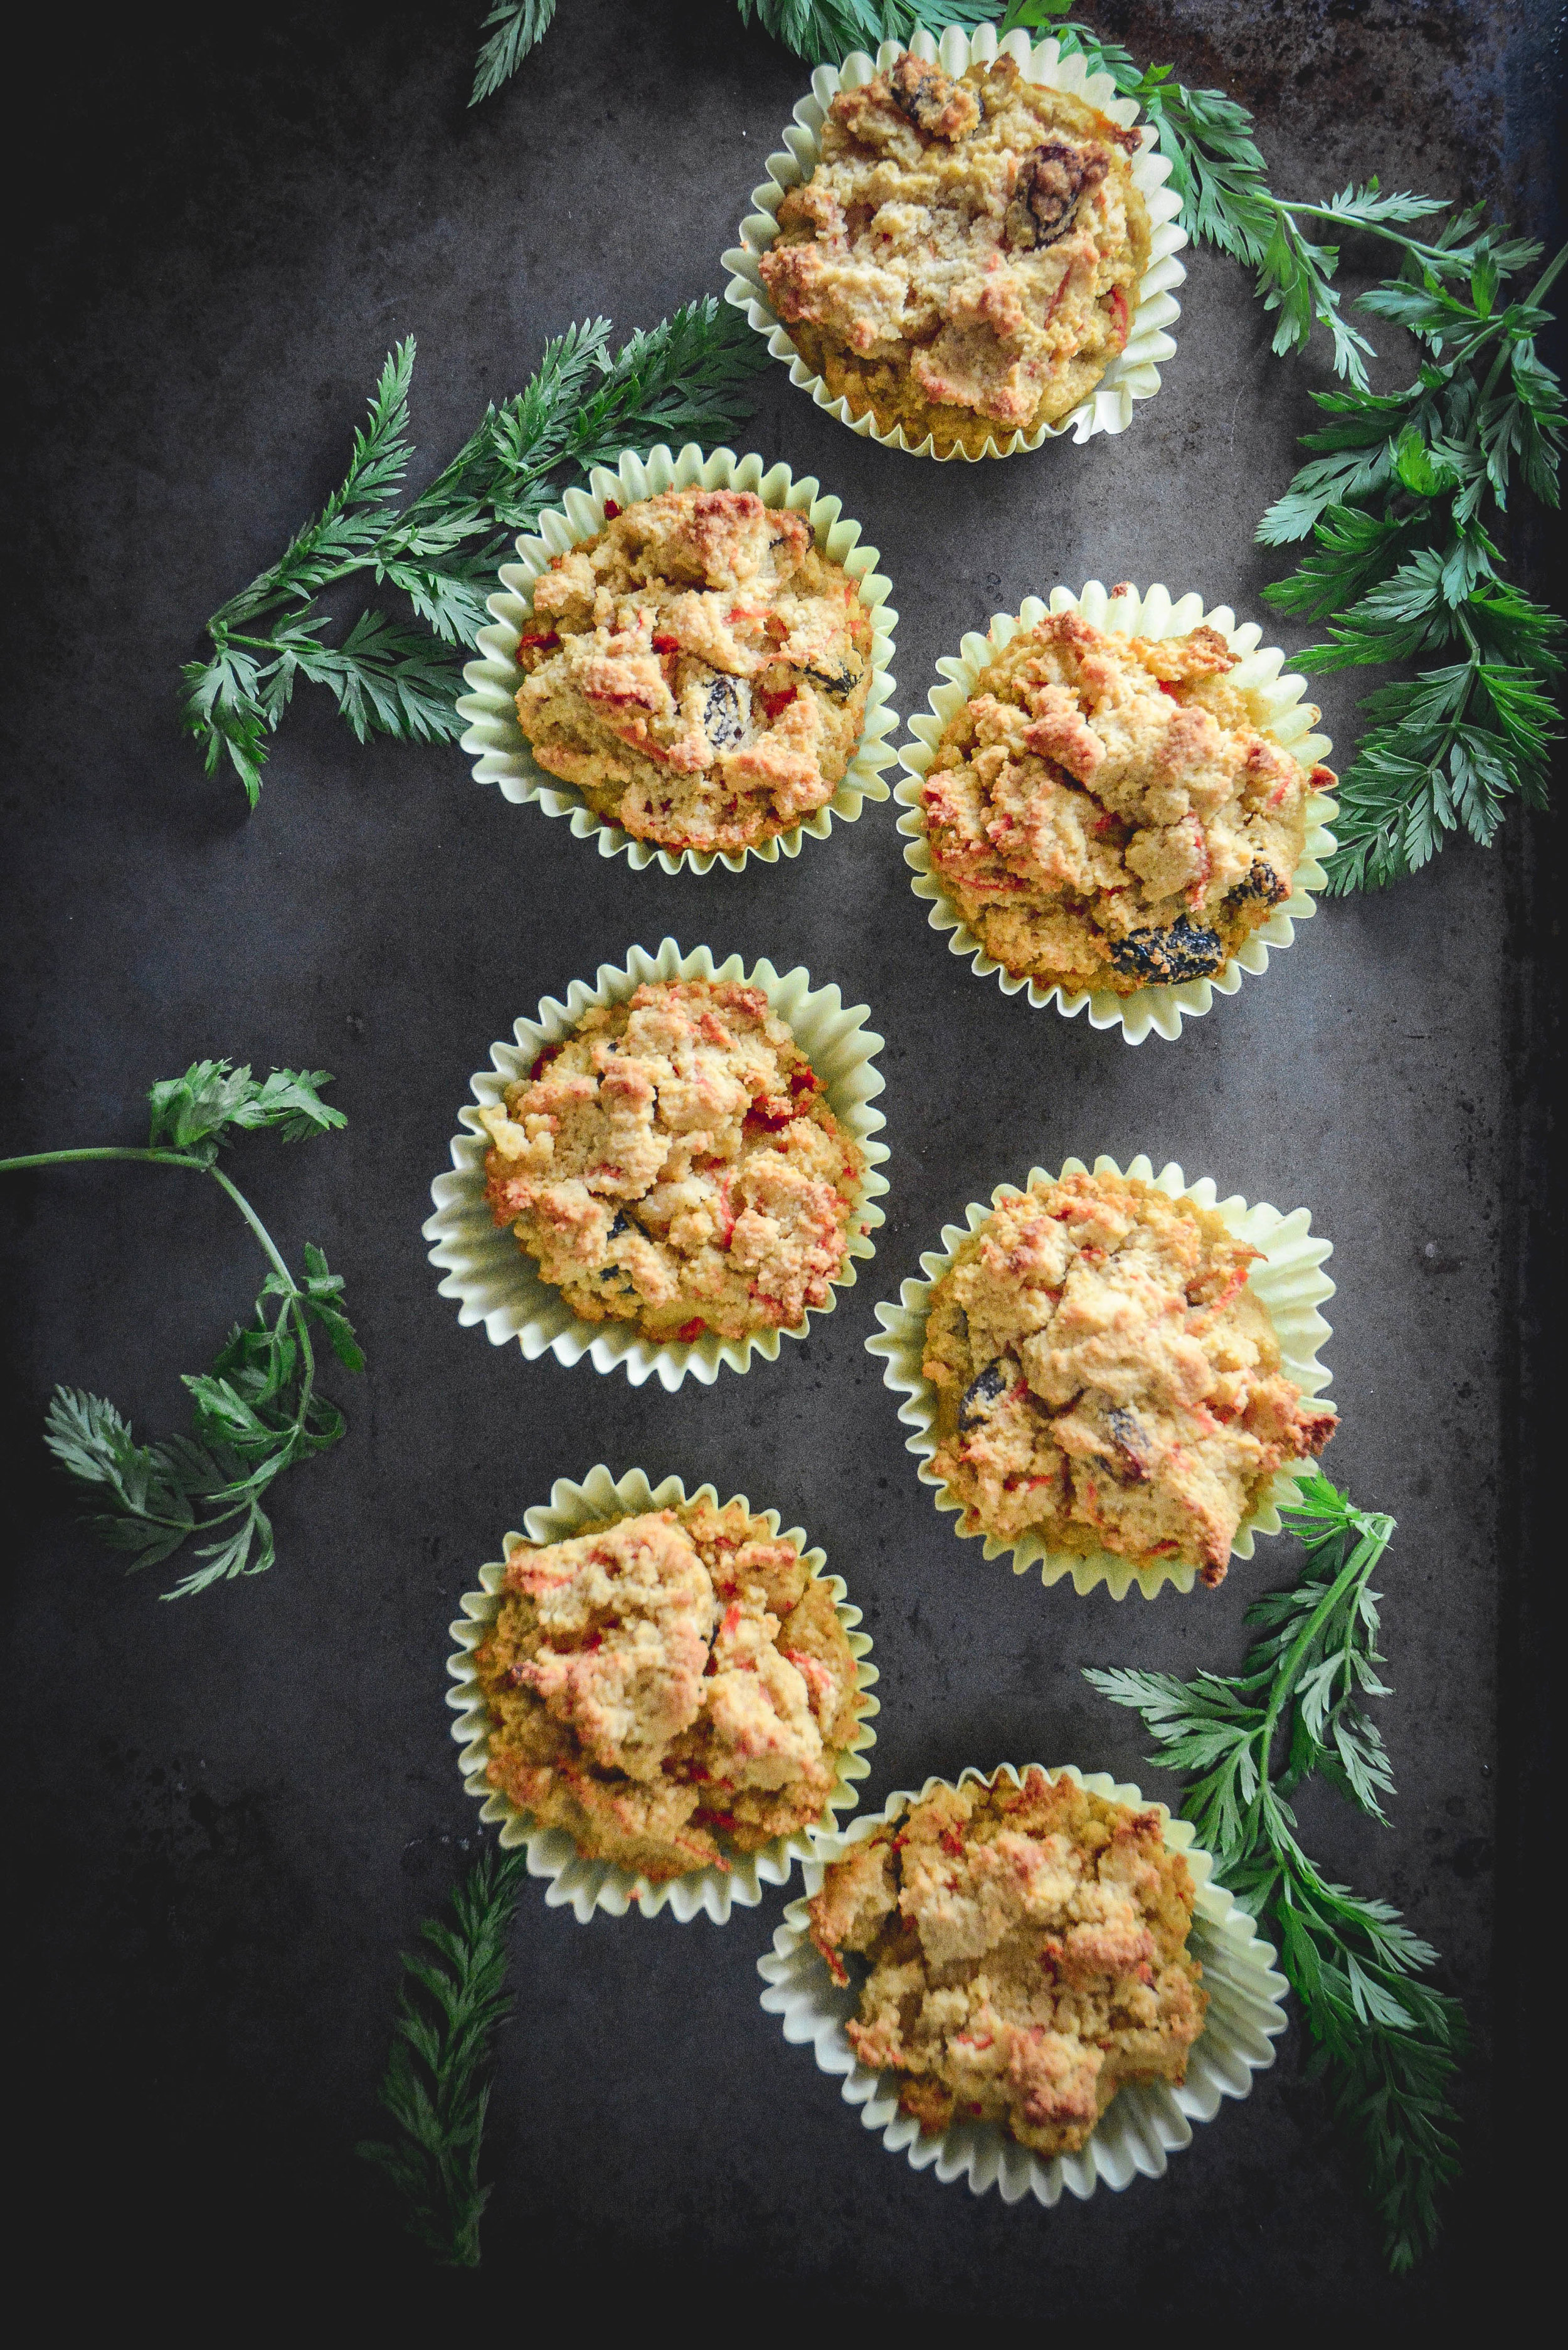 paleo cardamom carrot muffins on dark tray with greens